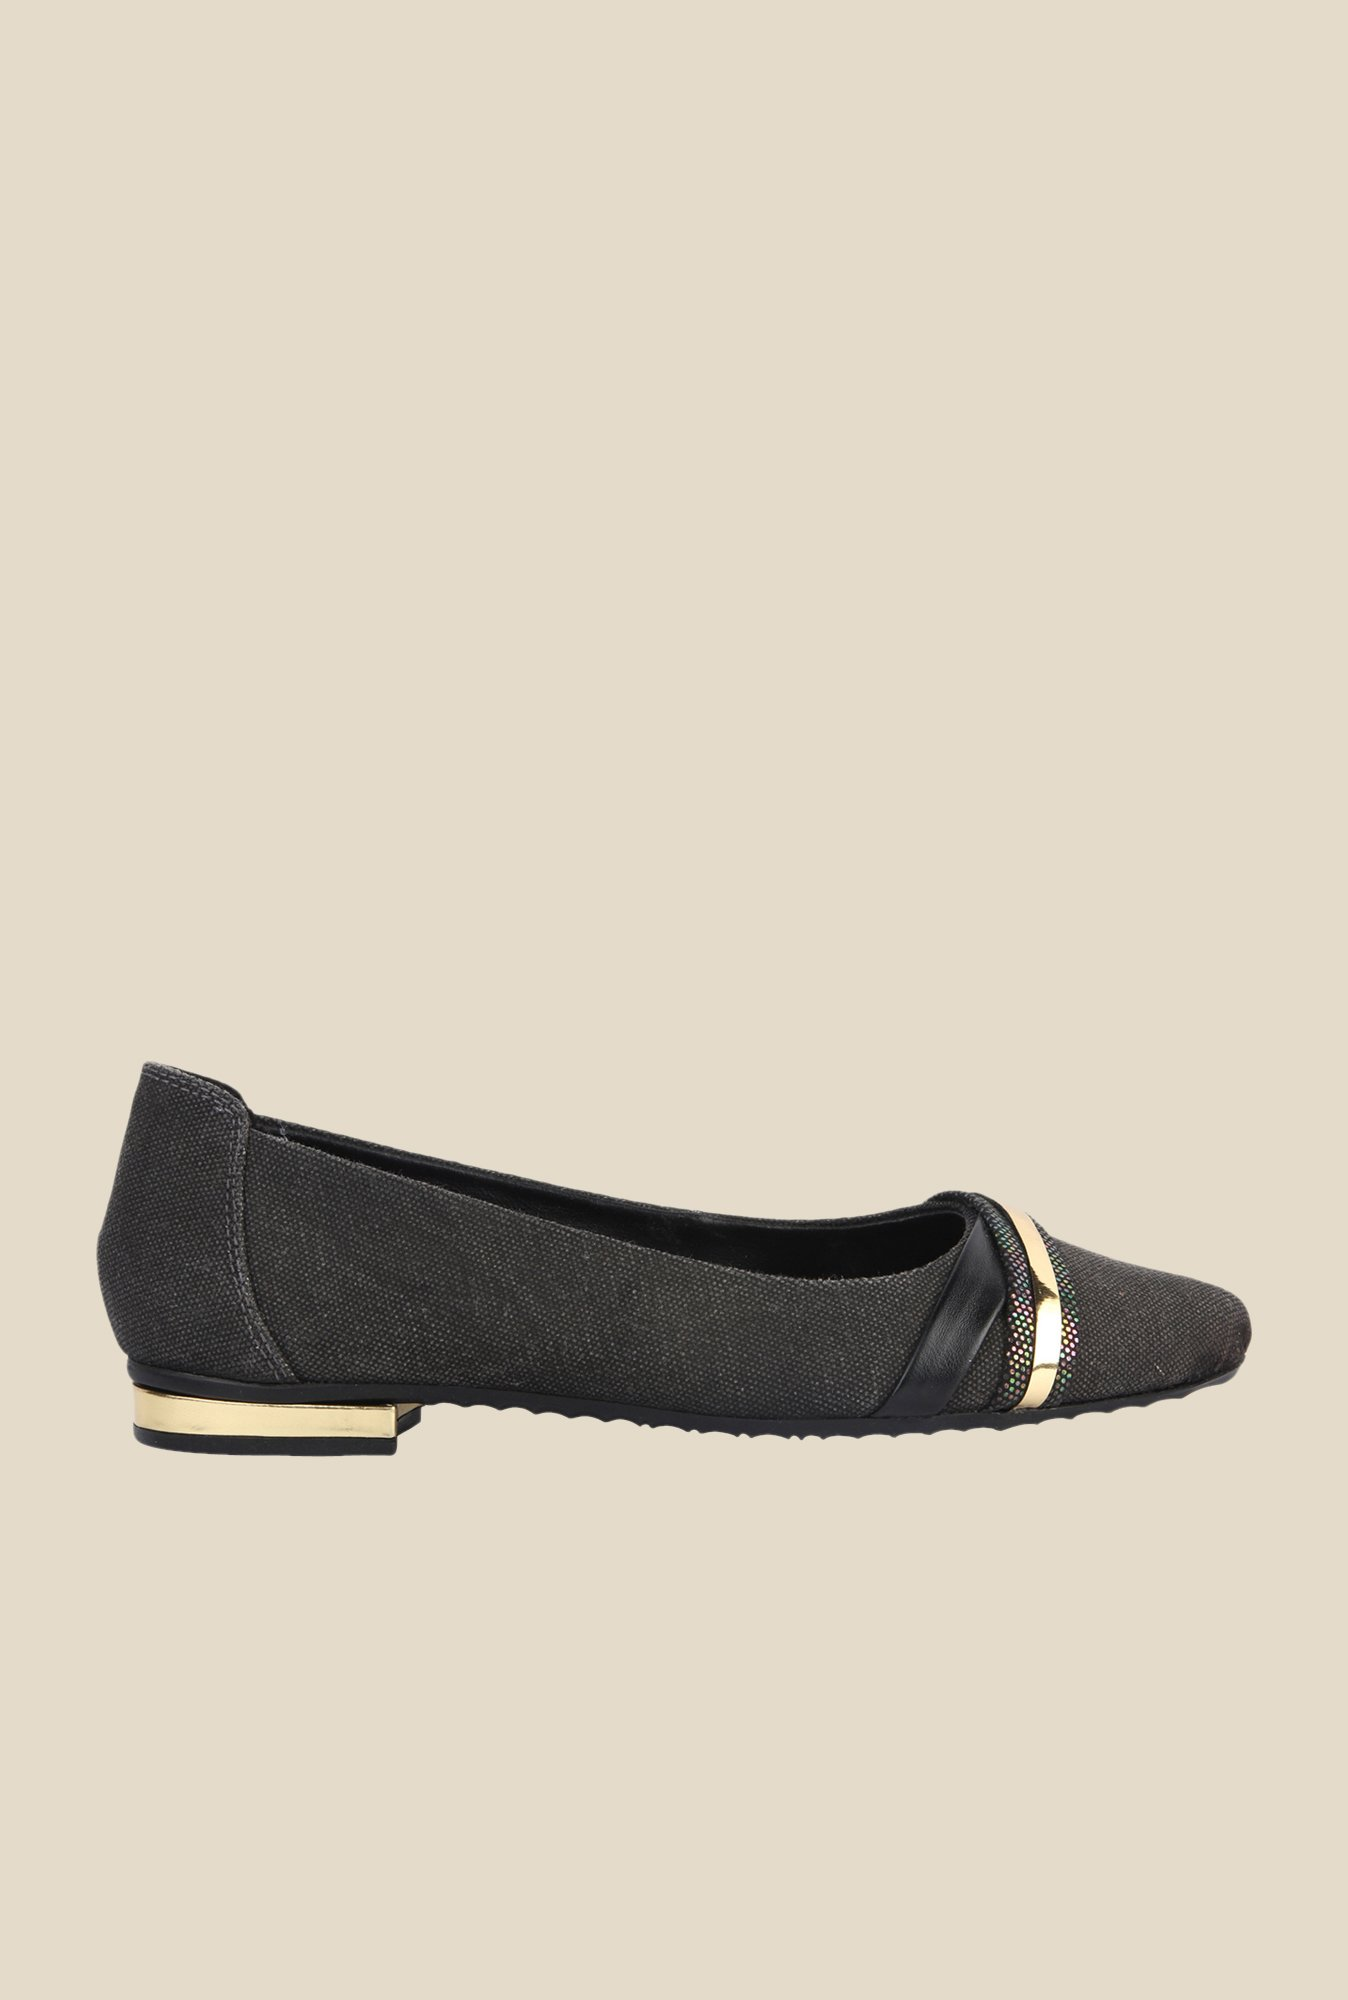 La Briza Black Ballerina Leather Shoe